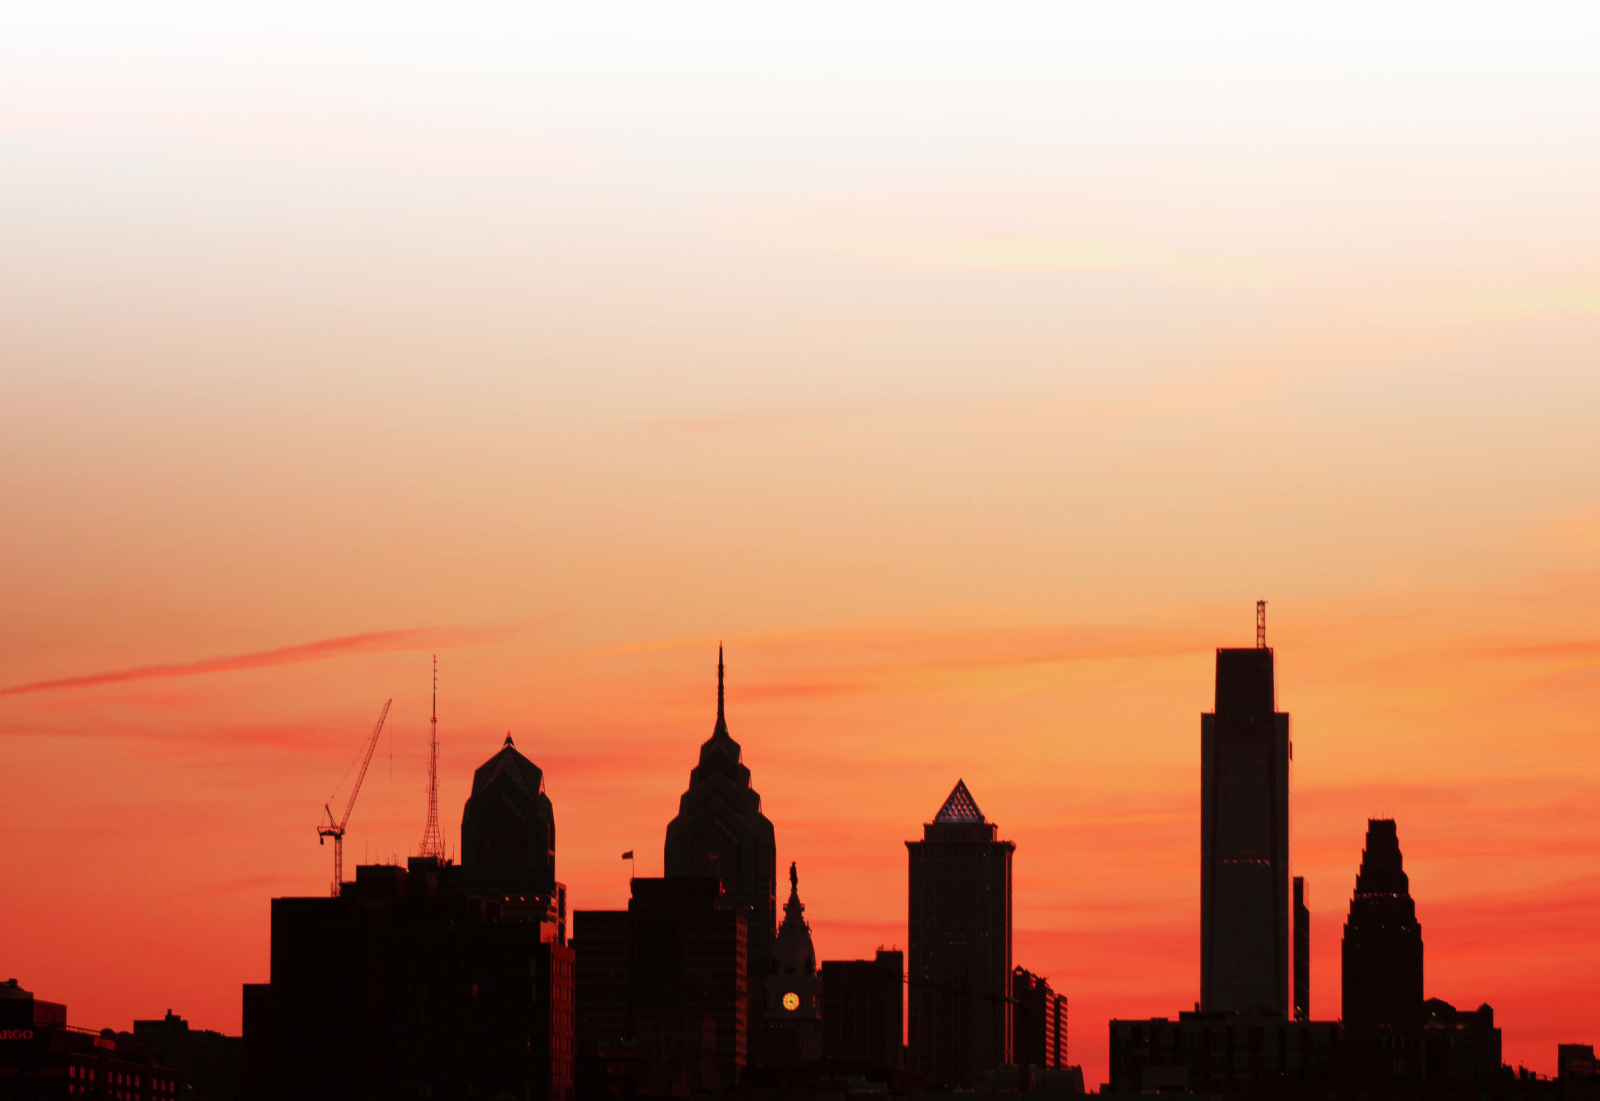 Sunset view of the city of Philadelphia